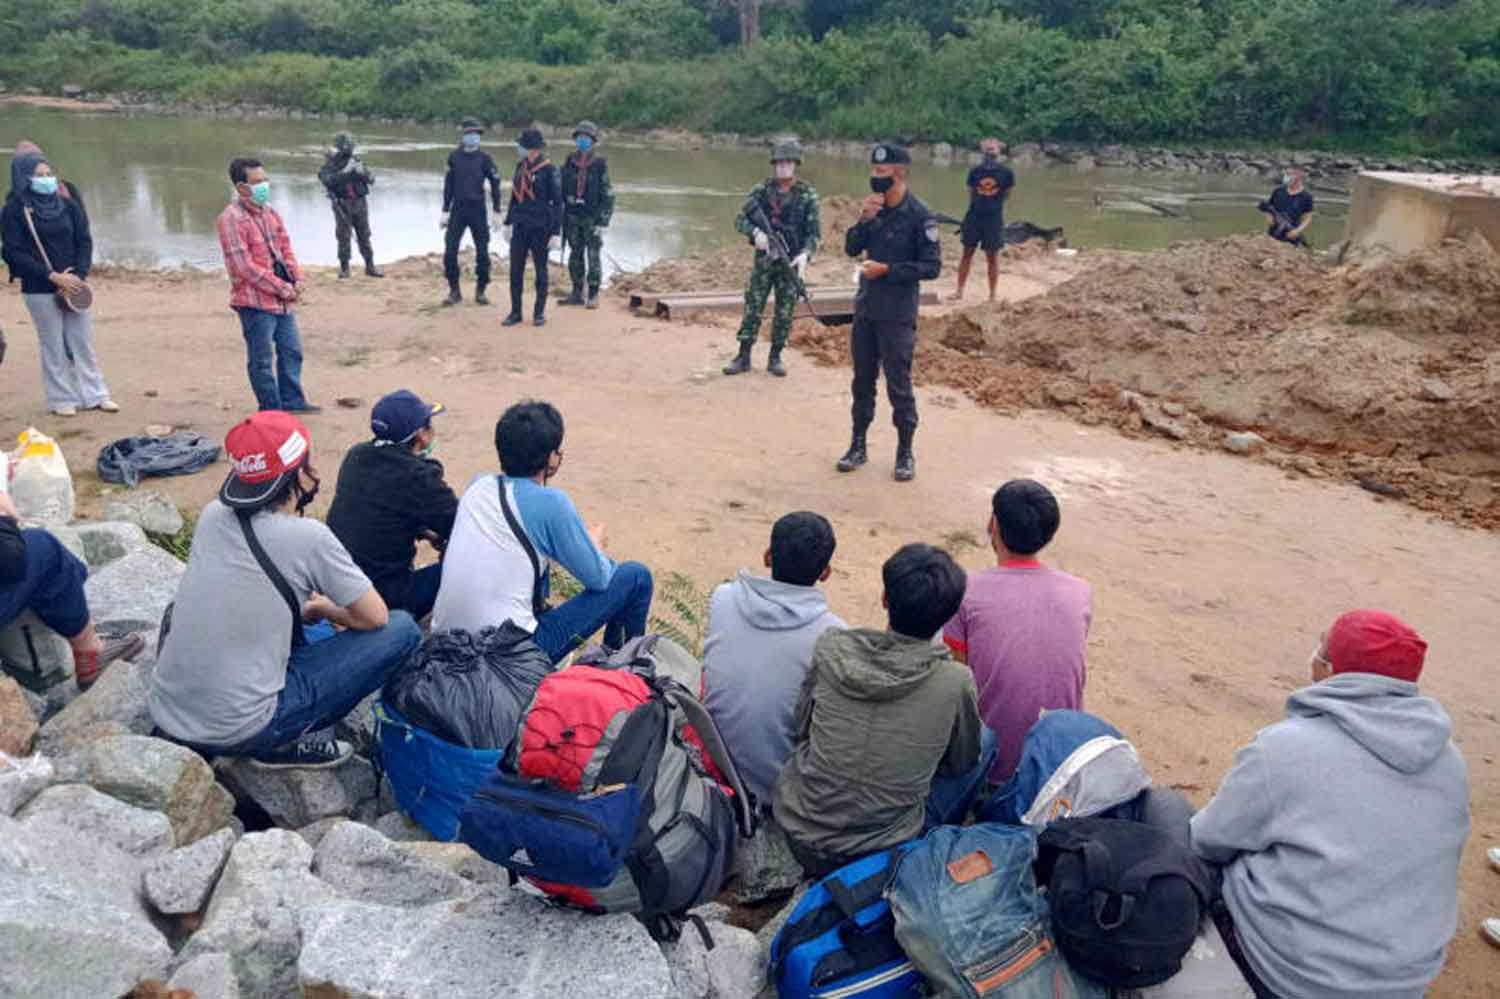 Security officers speak to Thai workers who illegally crossed the border back from Malaysia to Sungai Kolok district of Narathiwat late last month. Waedao Harai